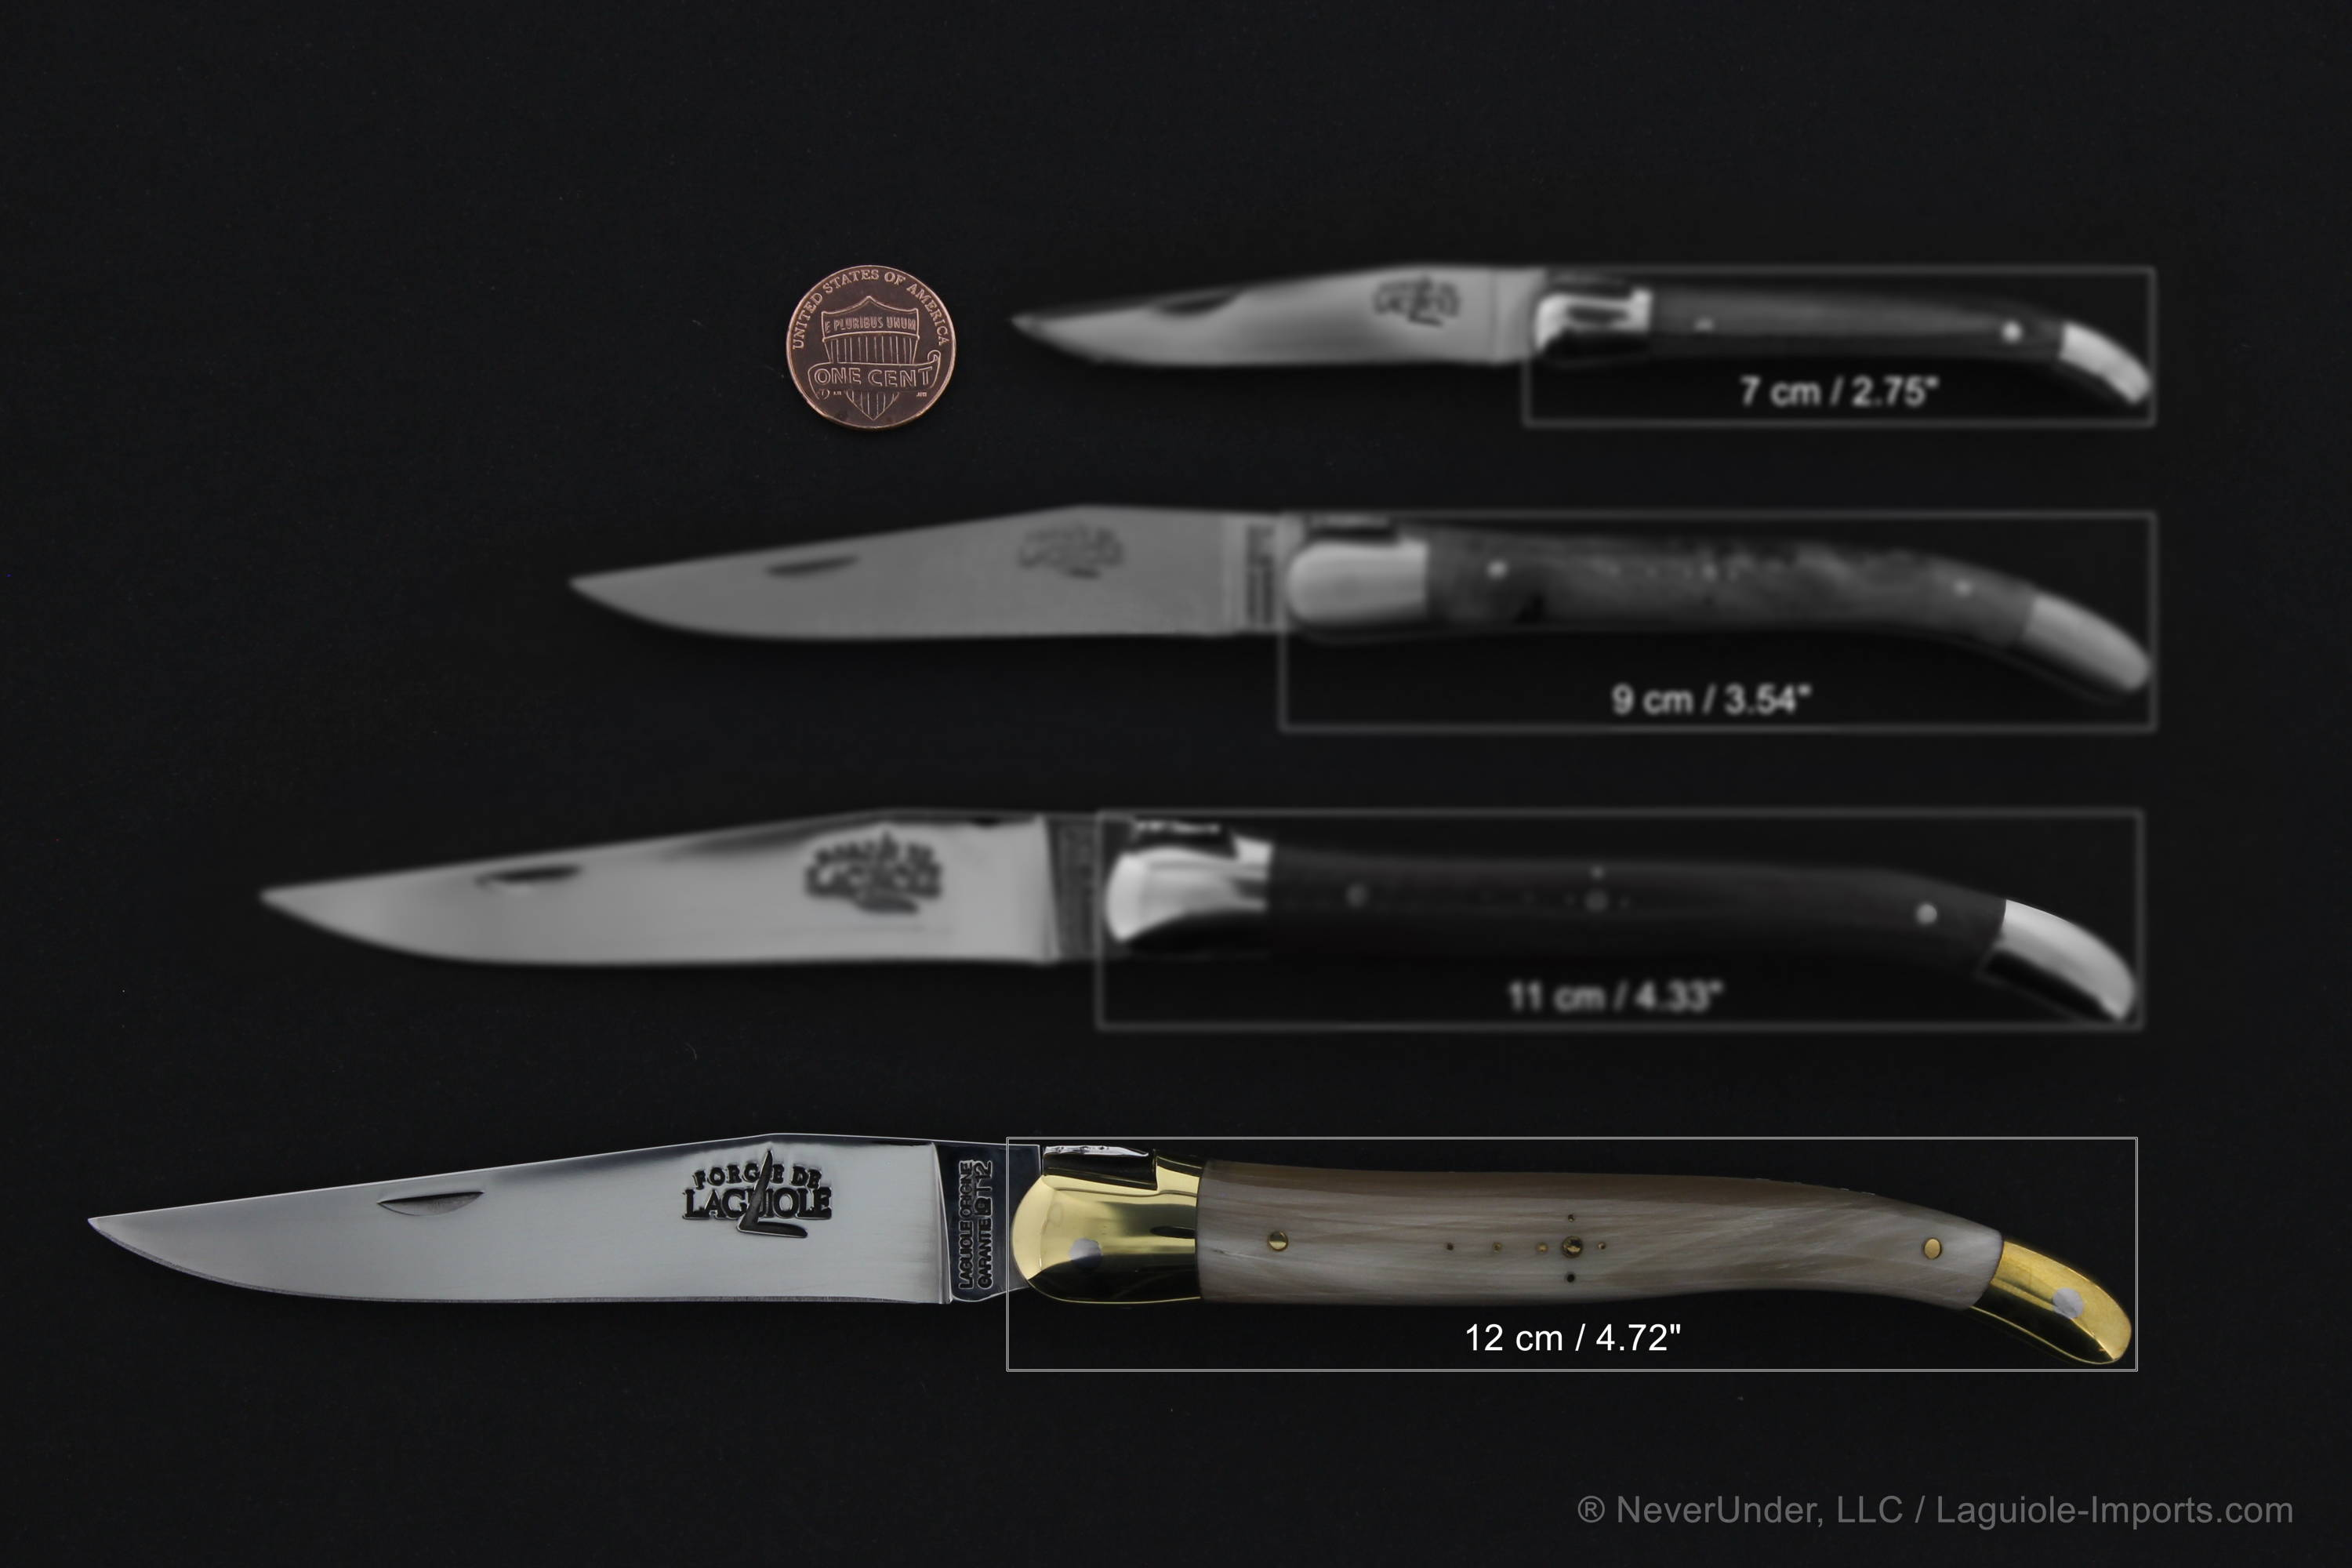 Laguiole 12 cm knife size comparison